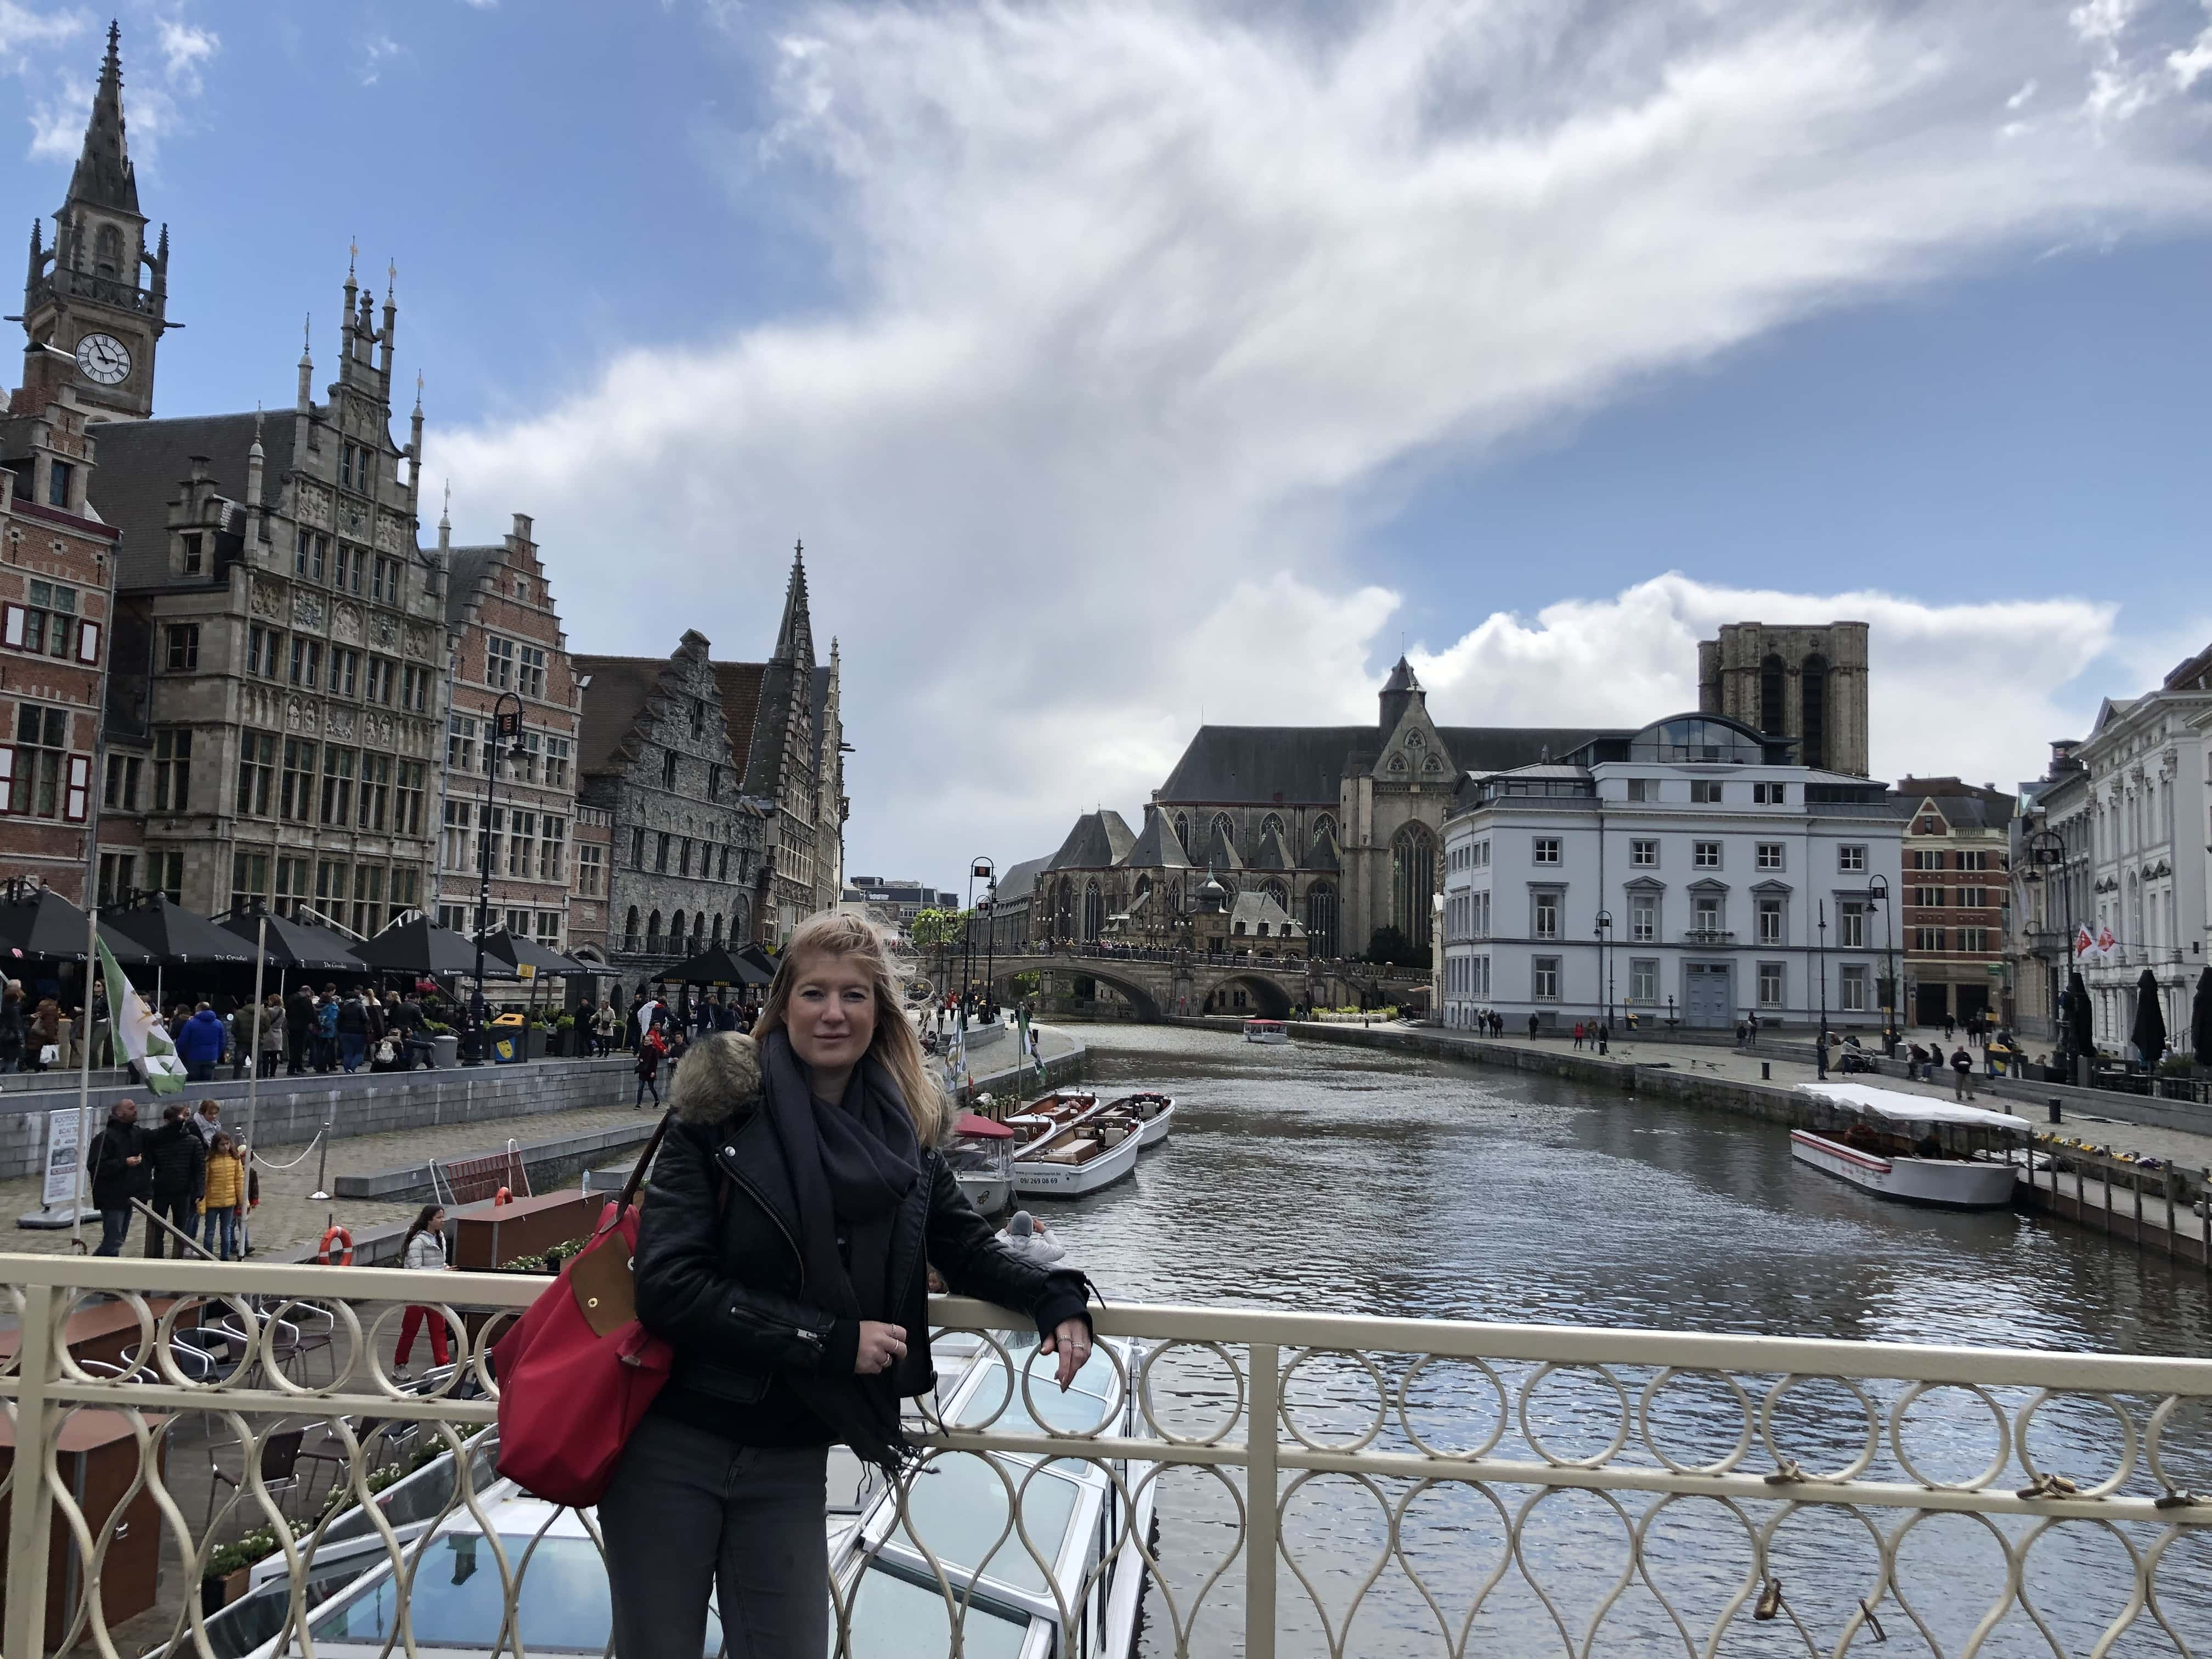 We went to Ghent